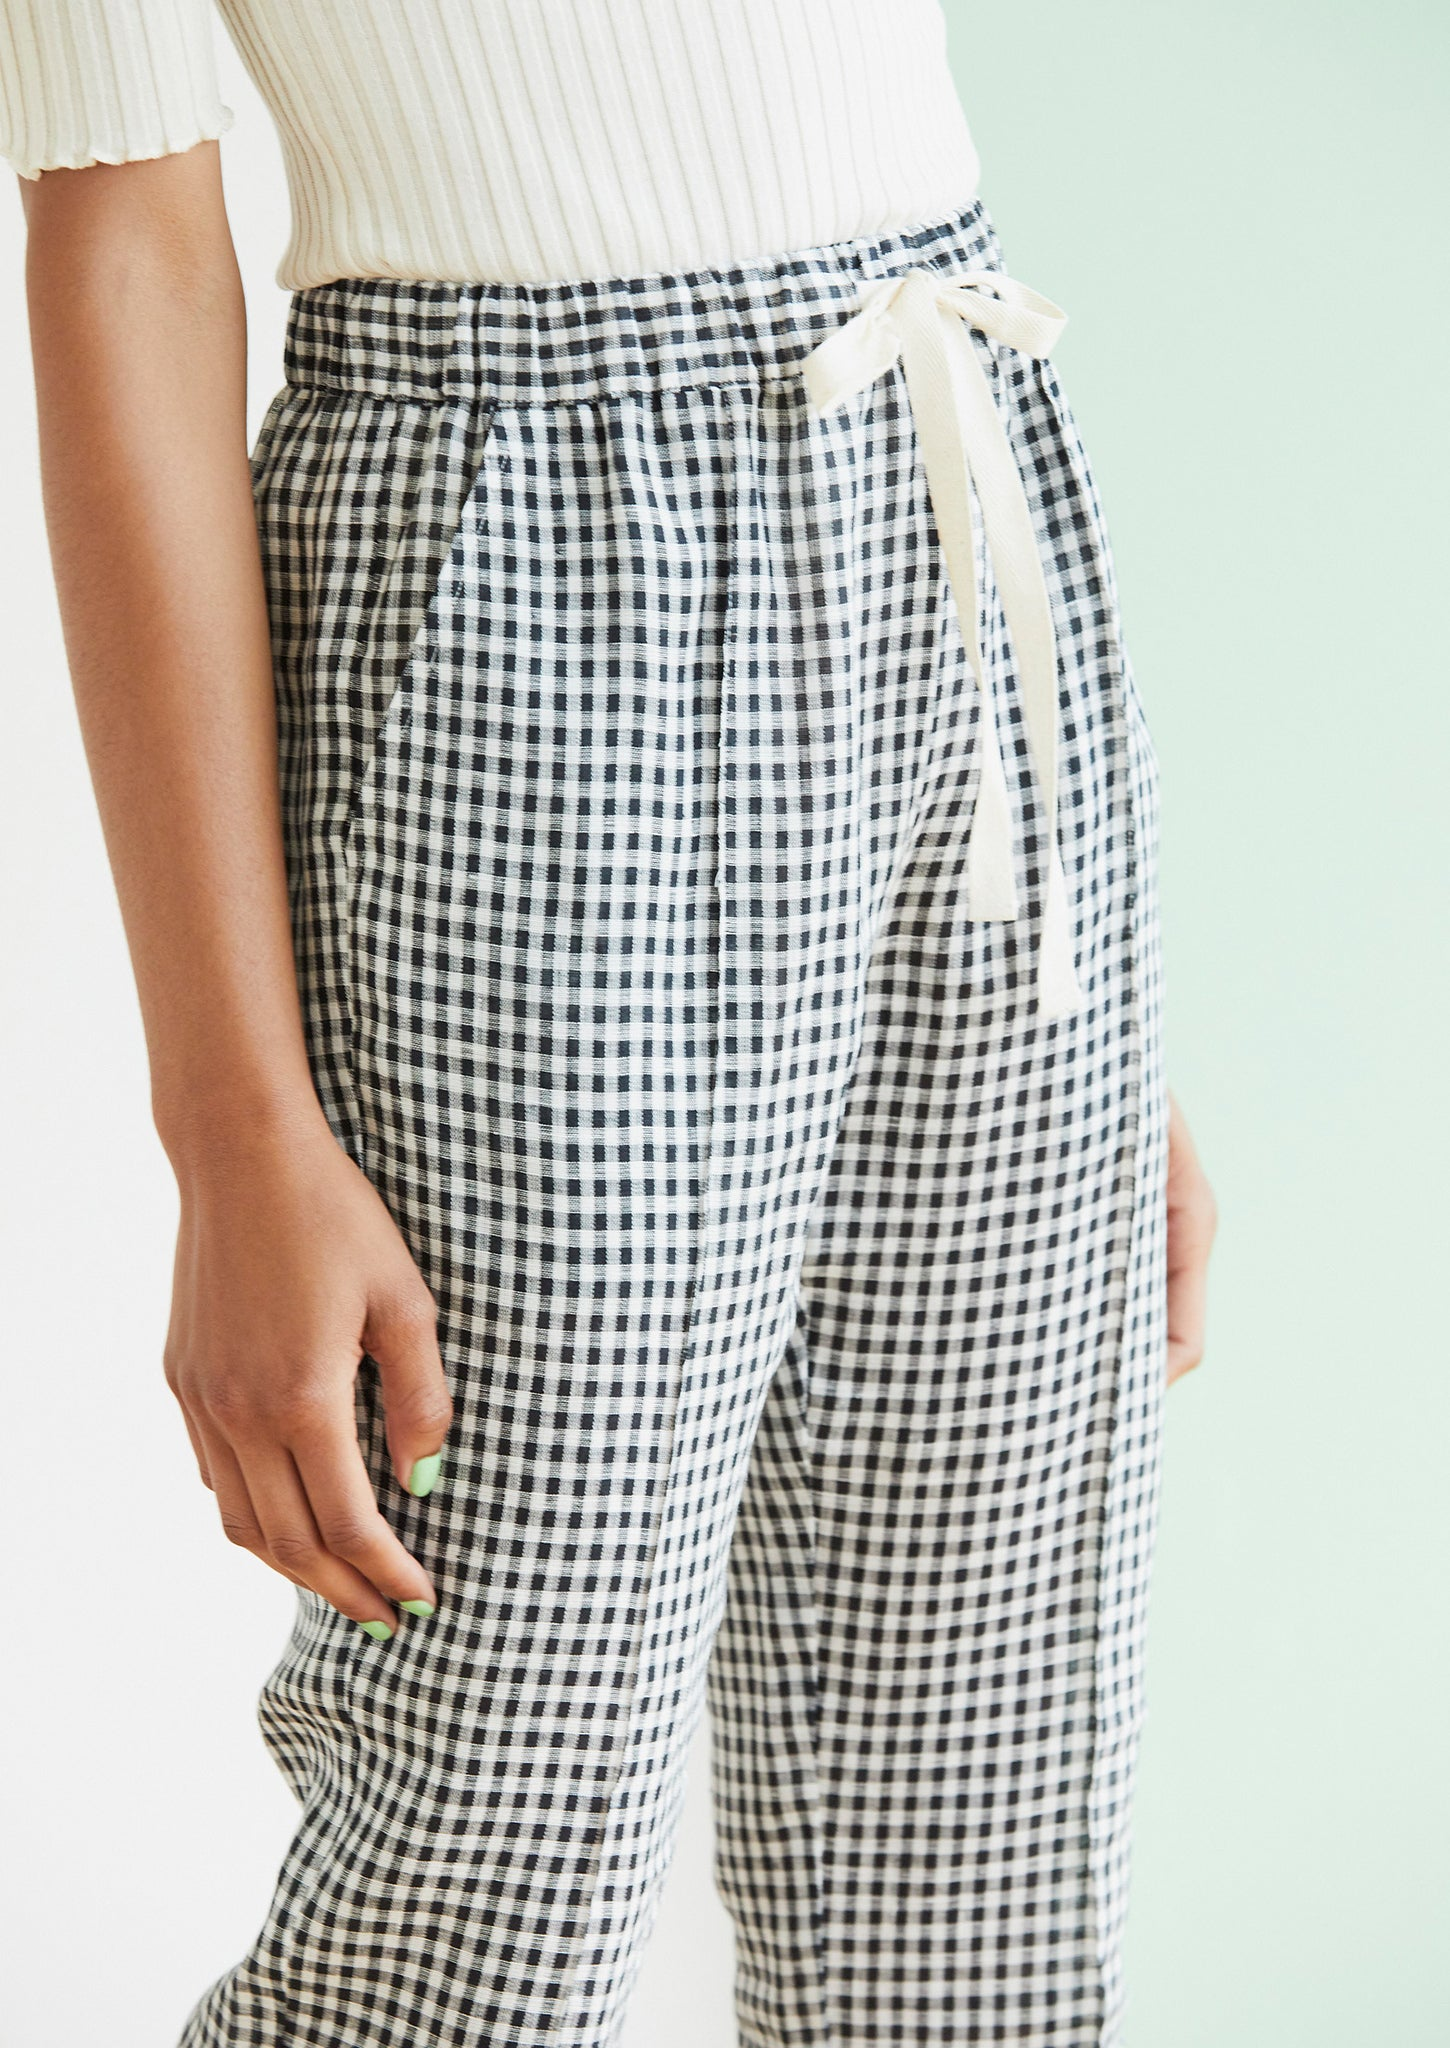 Now You See Her in Black Gingham - hej hej